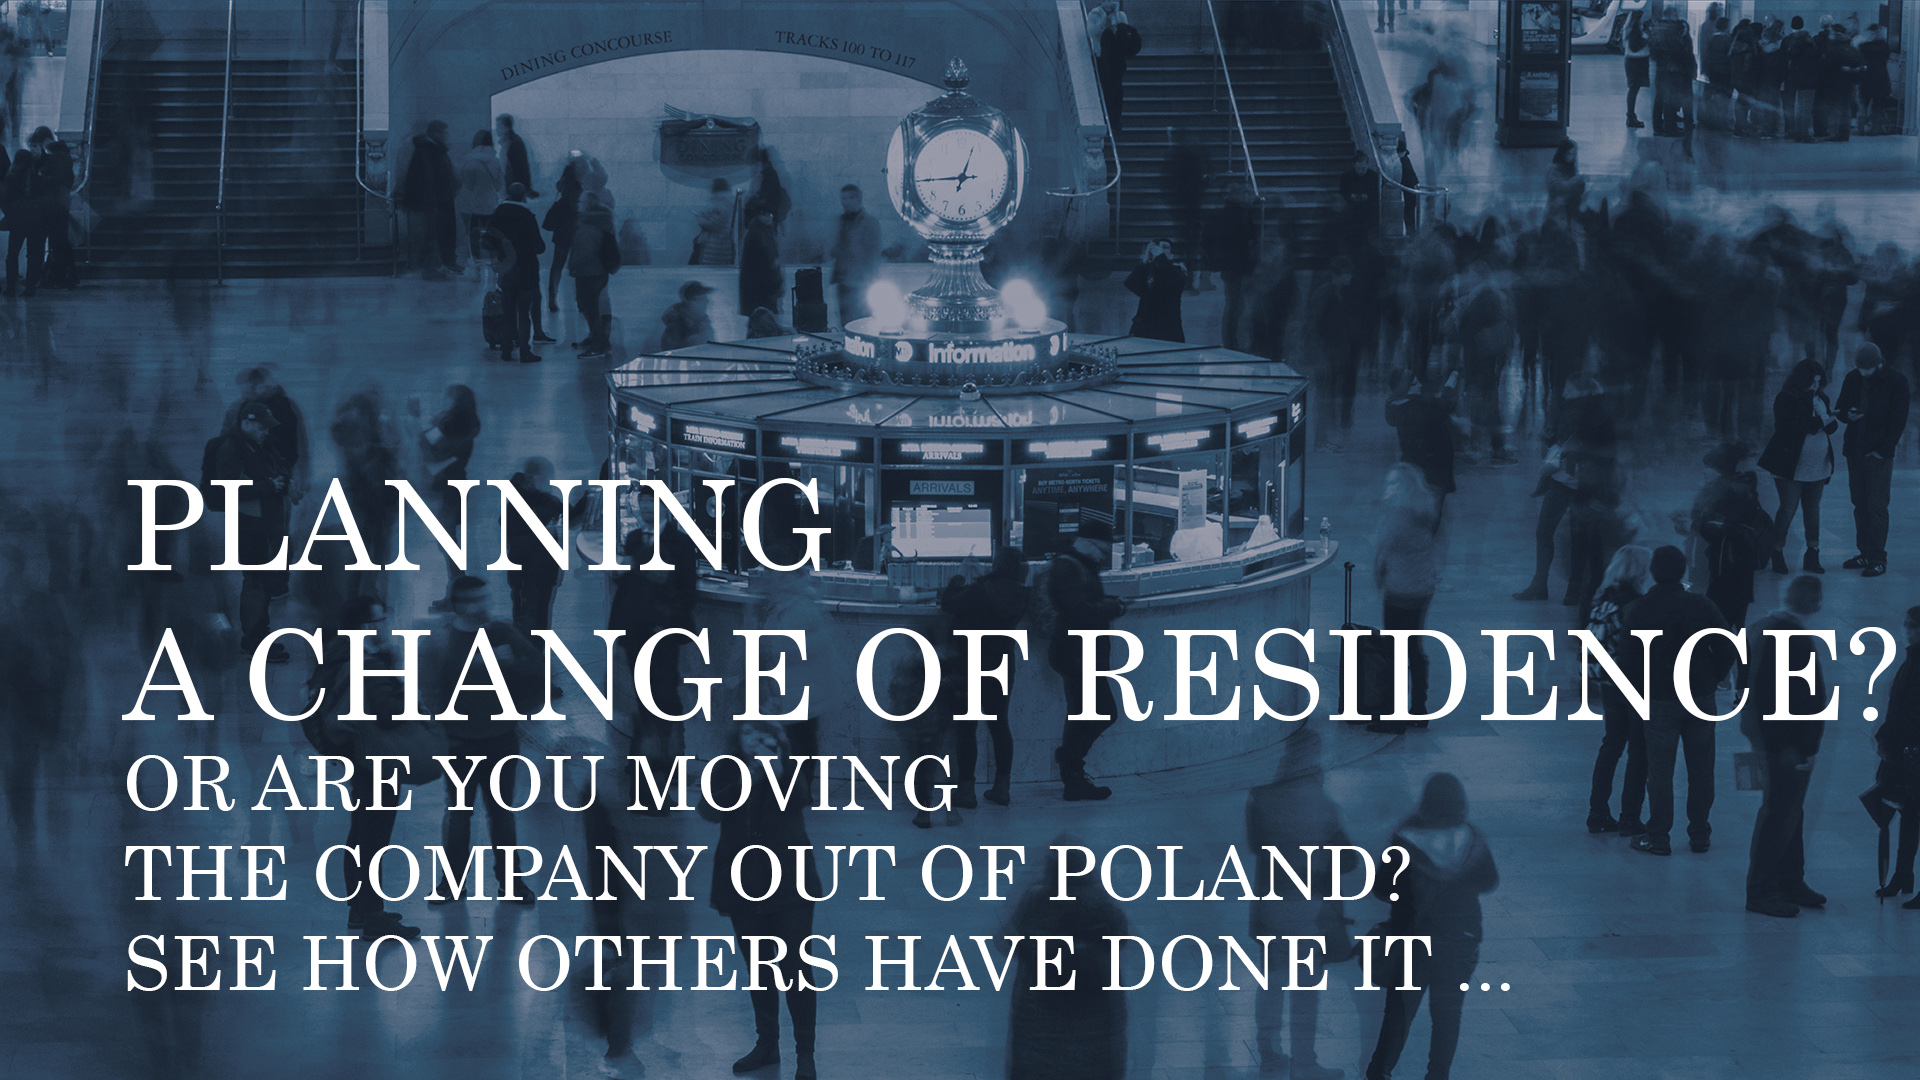 PLANNING A CHANGE OF RESIDENCE? OR ARE YOU MOVING THE COMPANY OUT OF POLAND? SEE HOW OTHERS HAVE DONE IT – A SUMMARY OF EXPERIENCES AND CHANGE TRENDS IN 2020